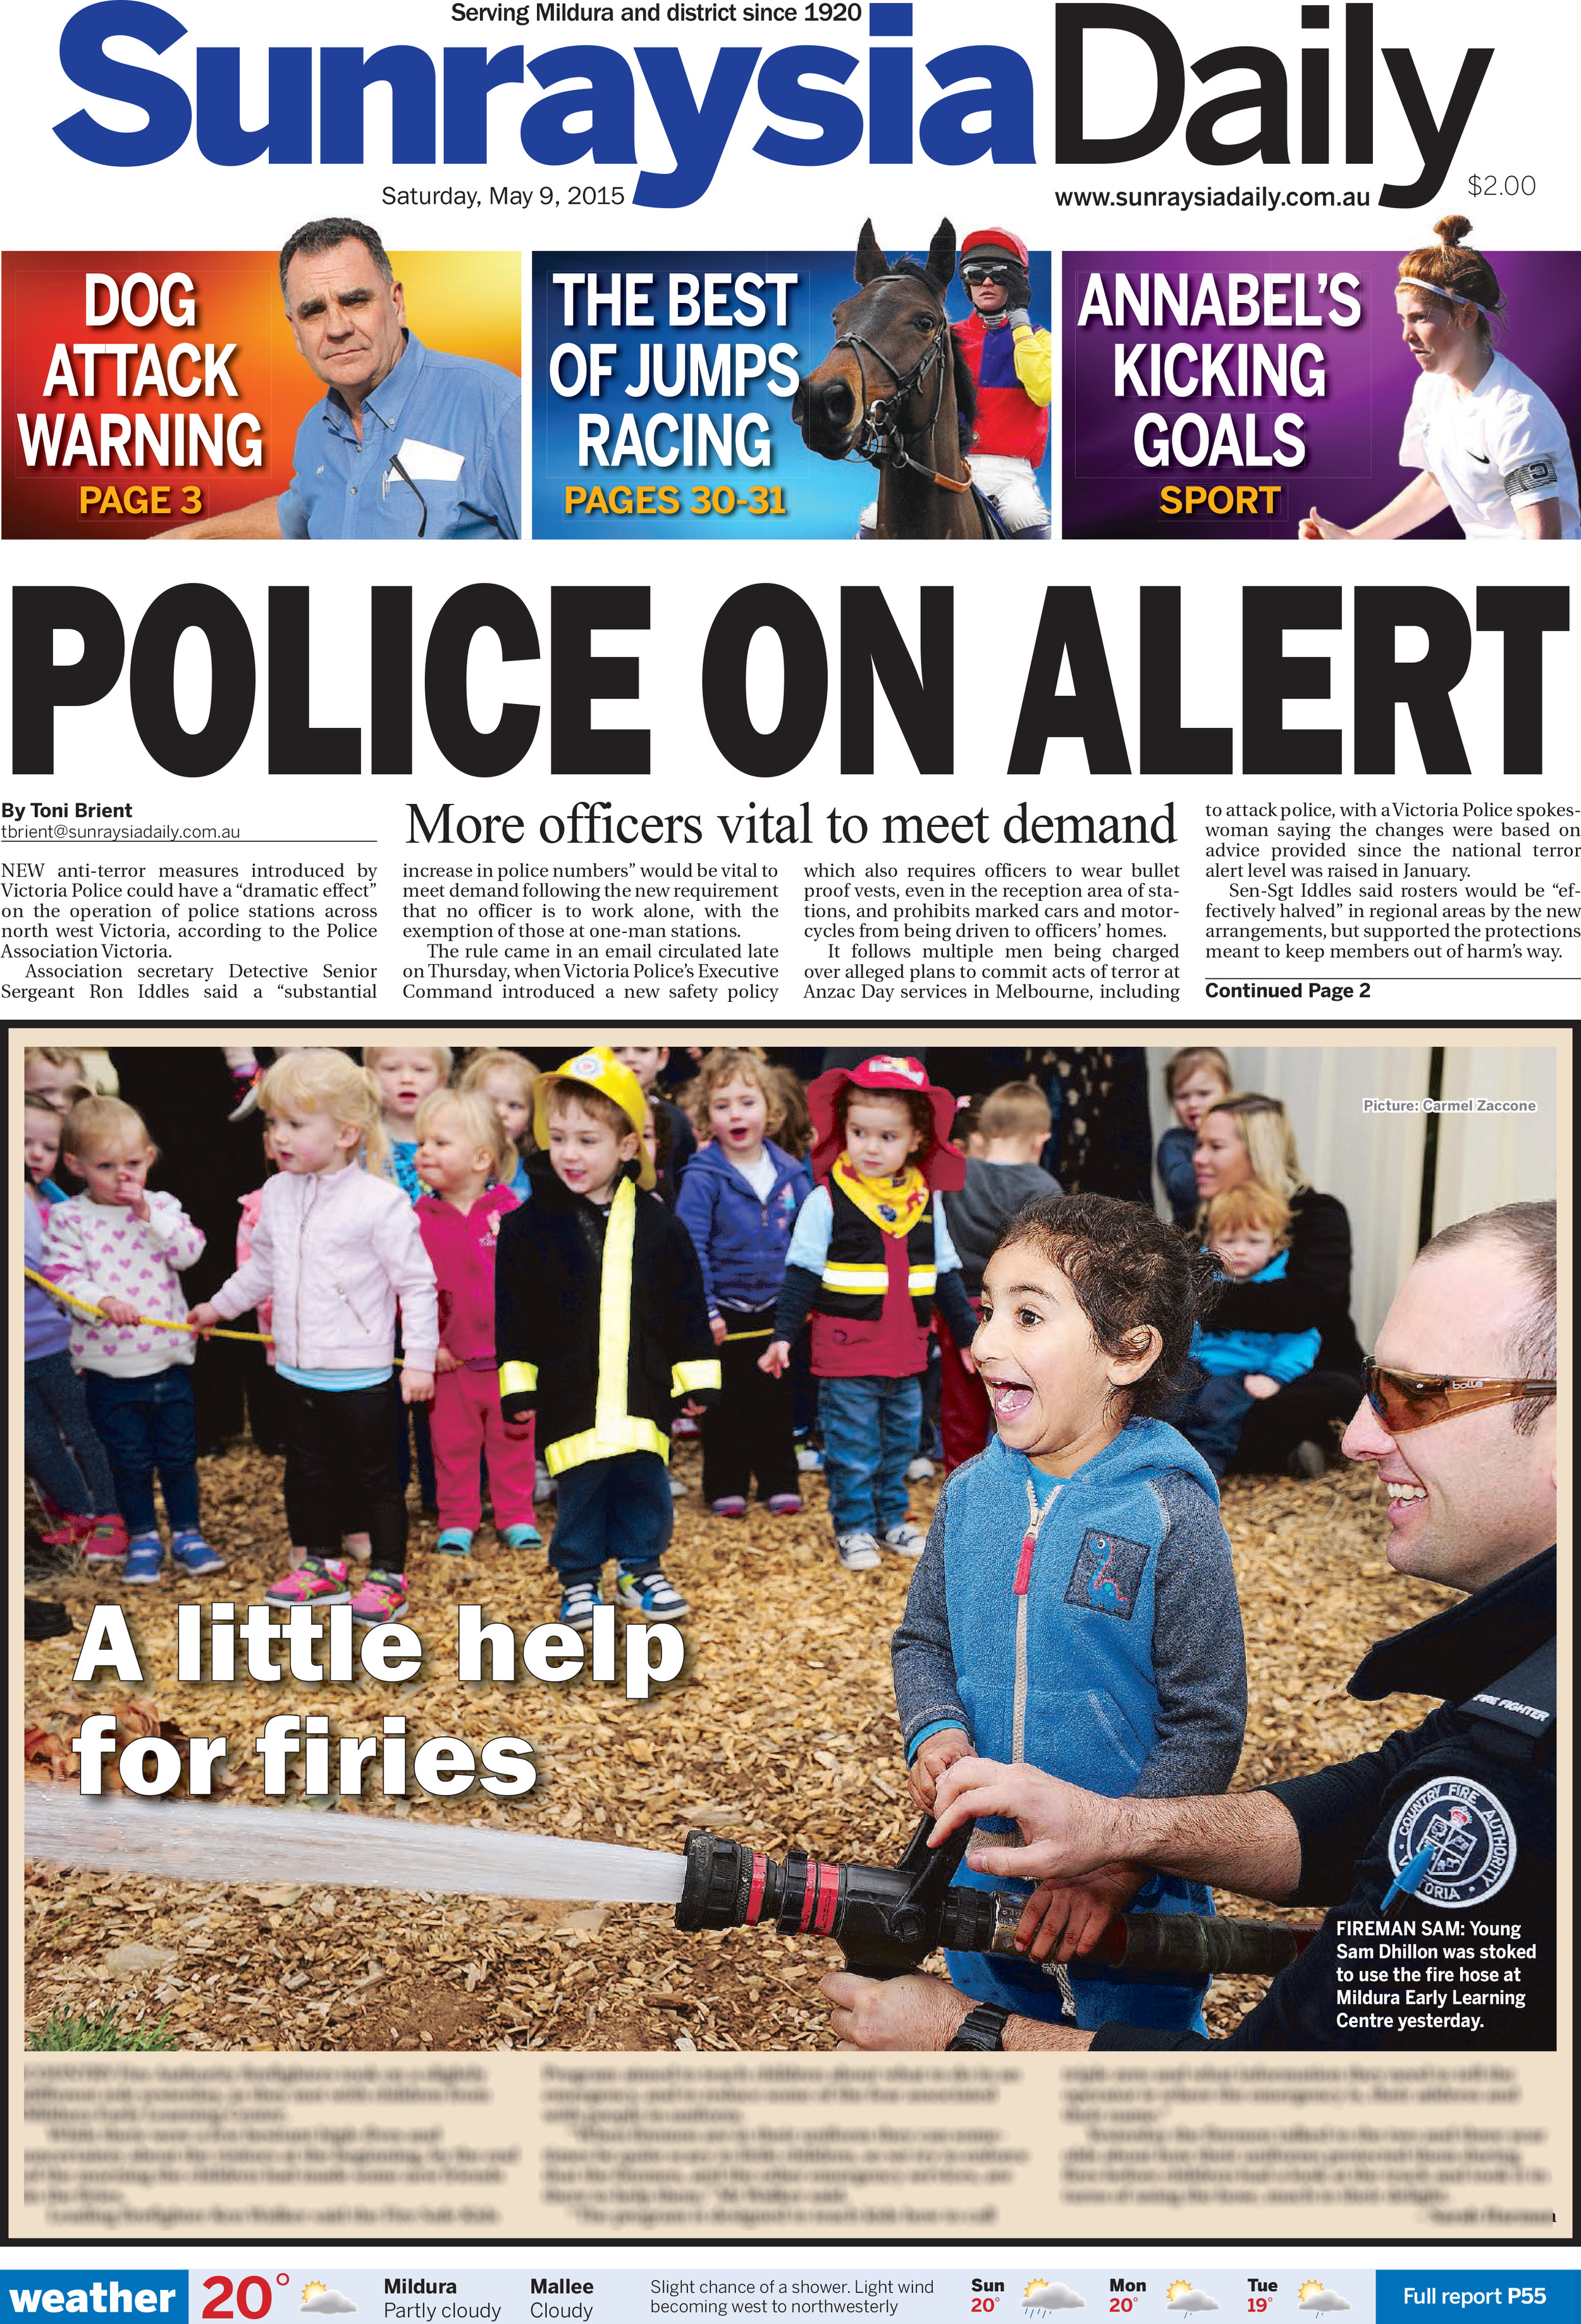 Police on alert , Sunraysia Daily, May 9, 2015.Click on images below to enlarge text